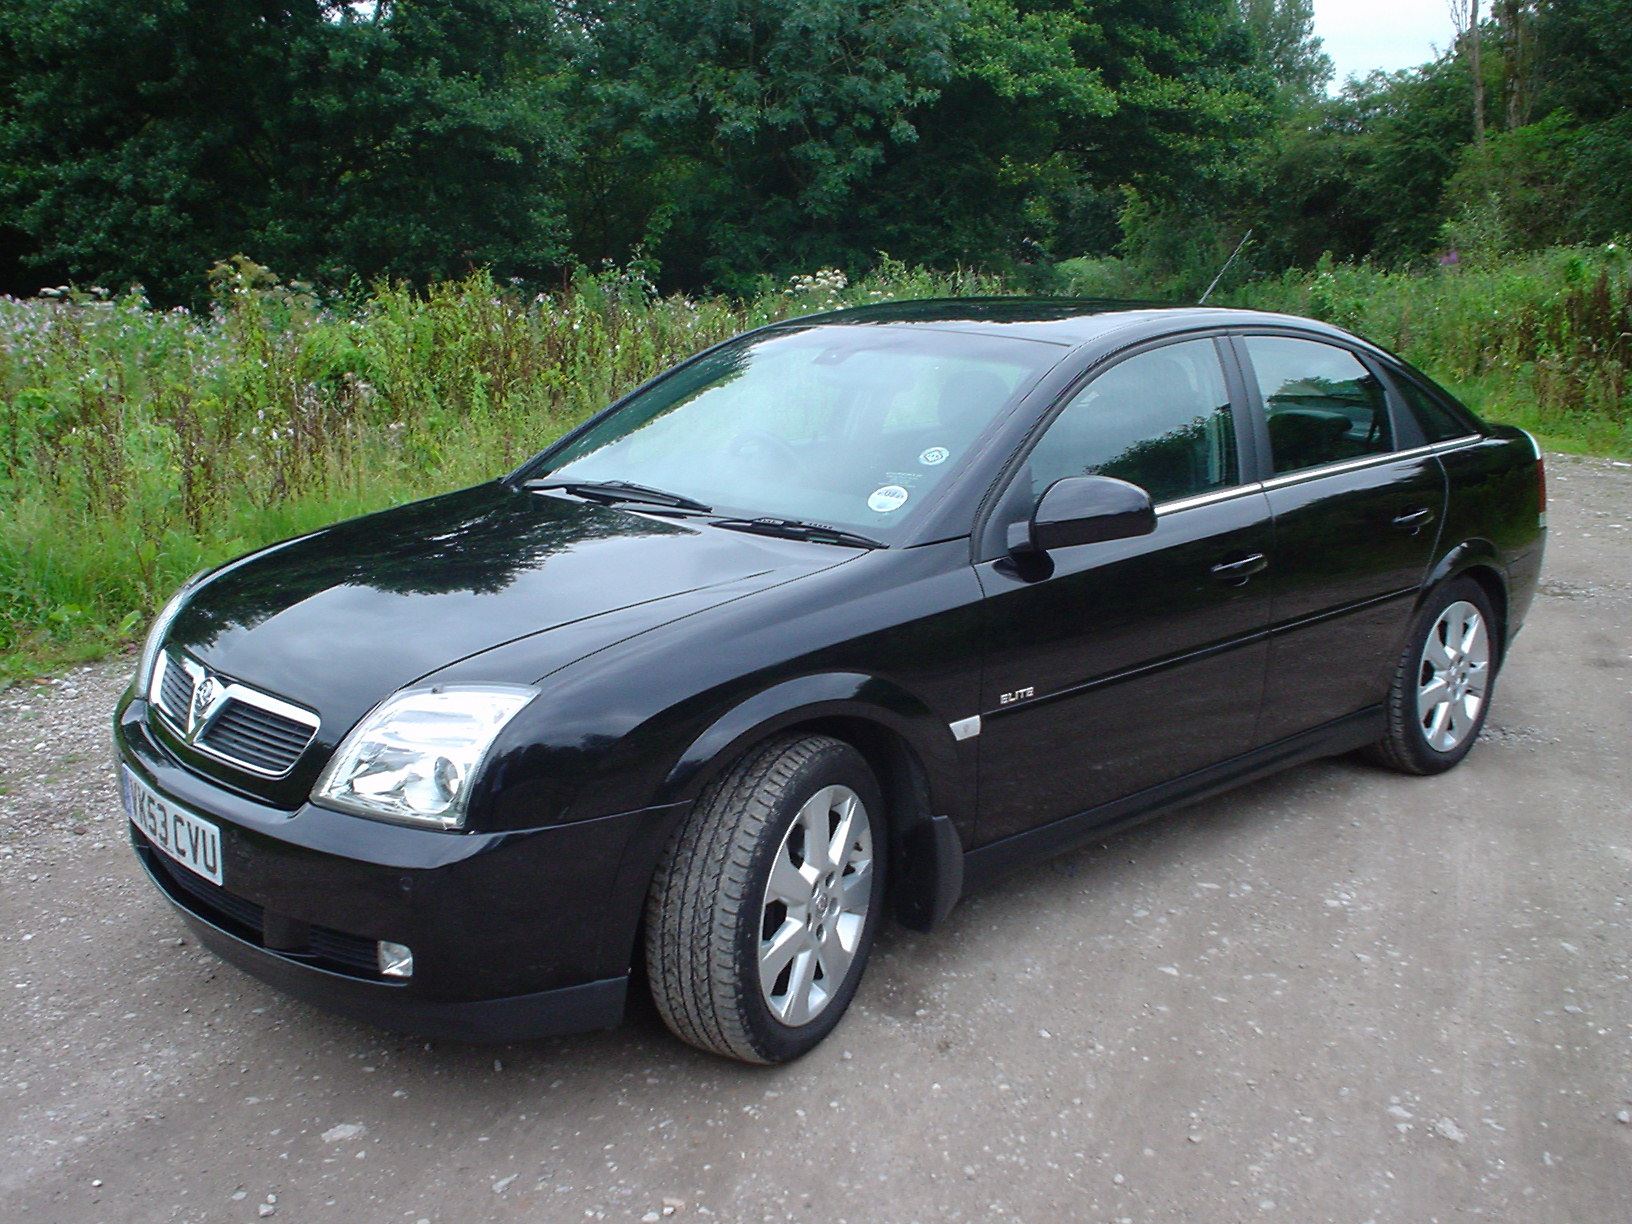 S80 Volvo 2017 >> Vauxhall Vectra history, photos on Better Parts LTD